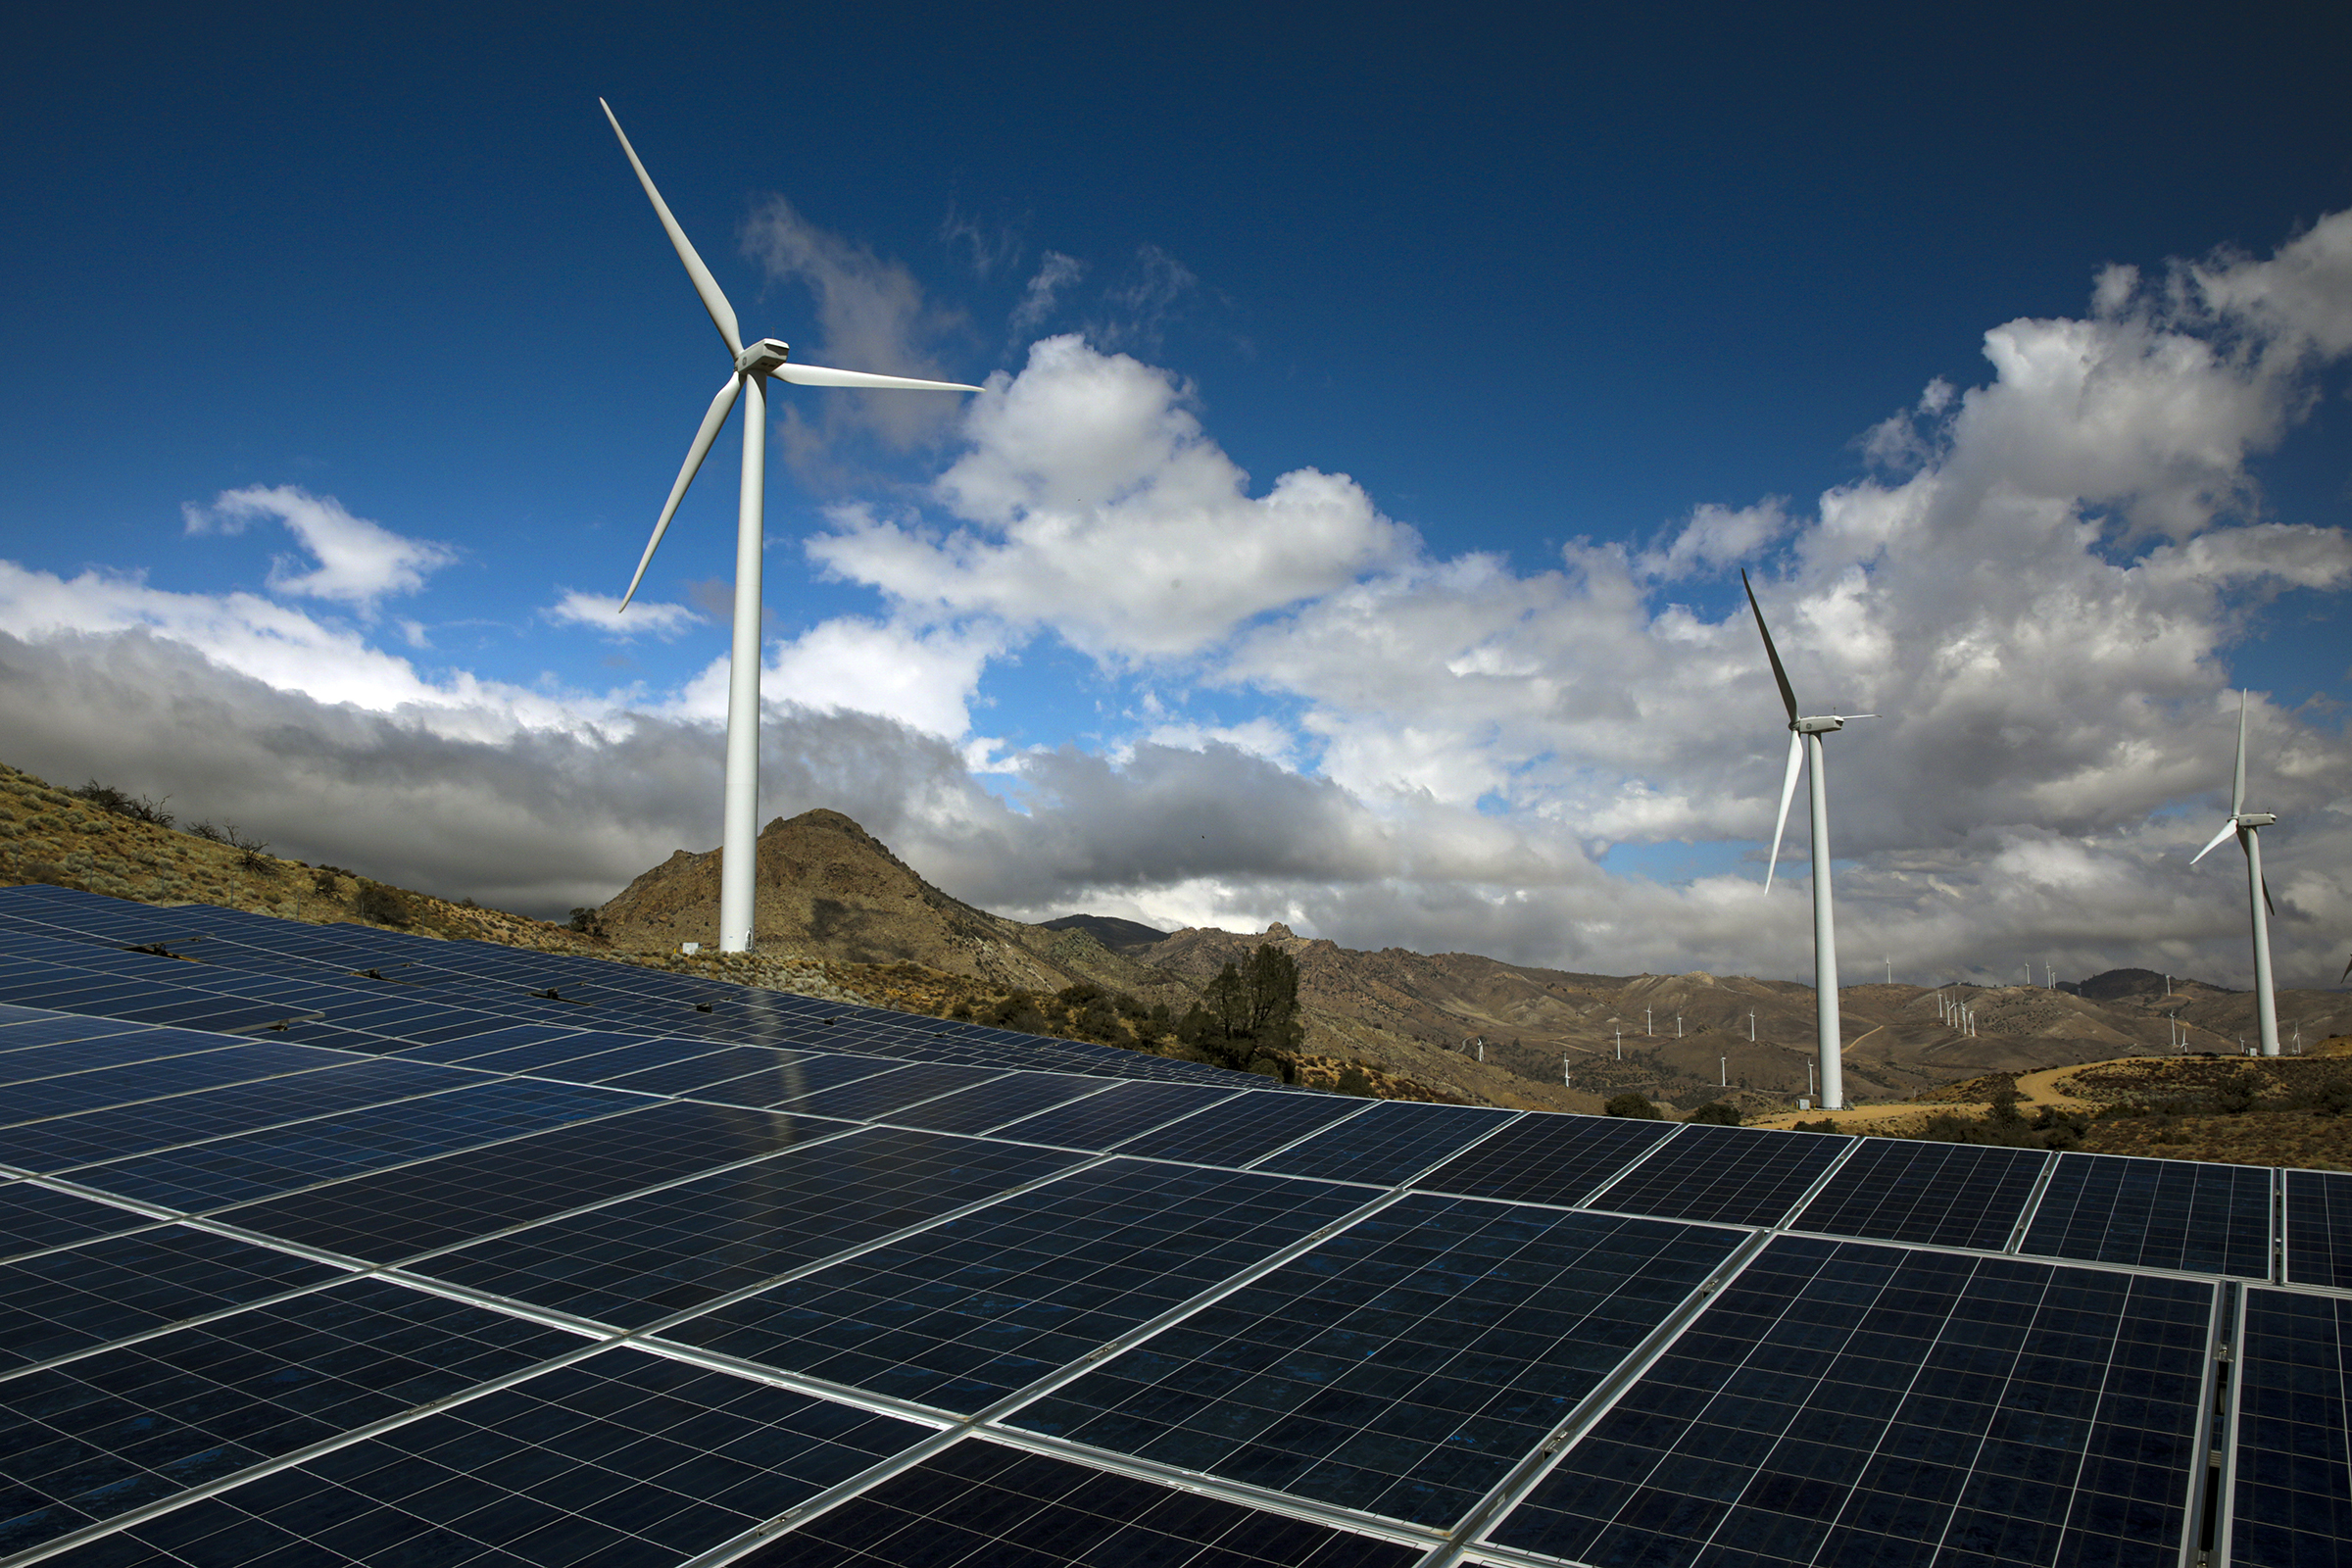 The U.S. needs a macrogrid to move electricity from areas that make it to areas that need it